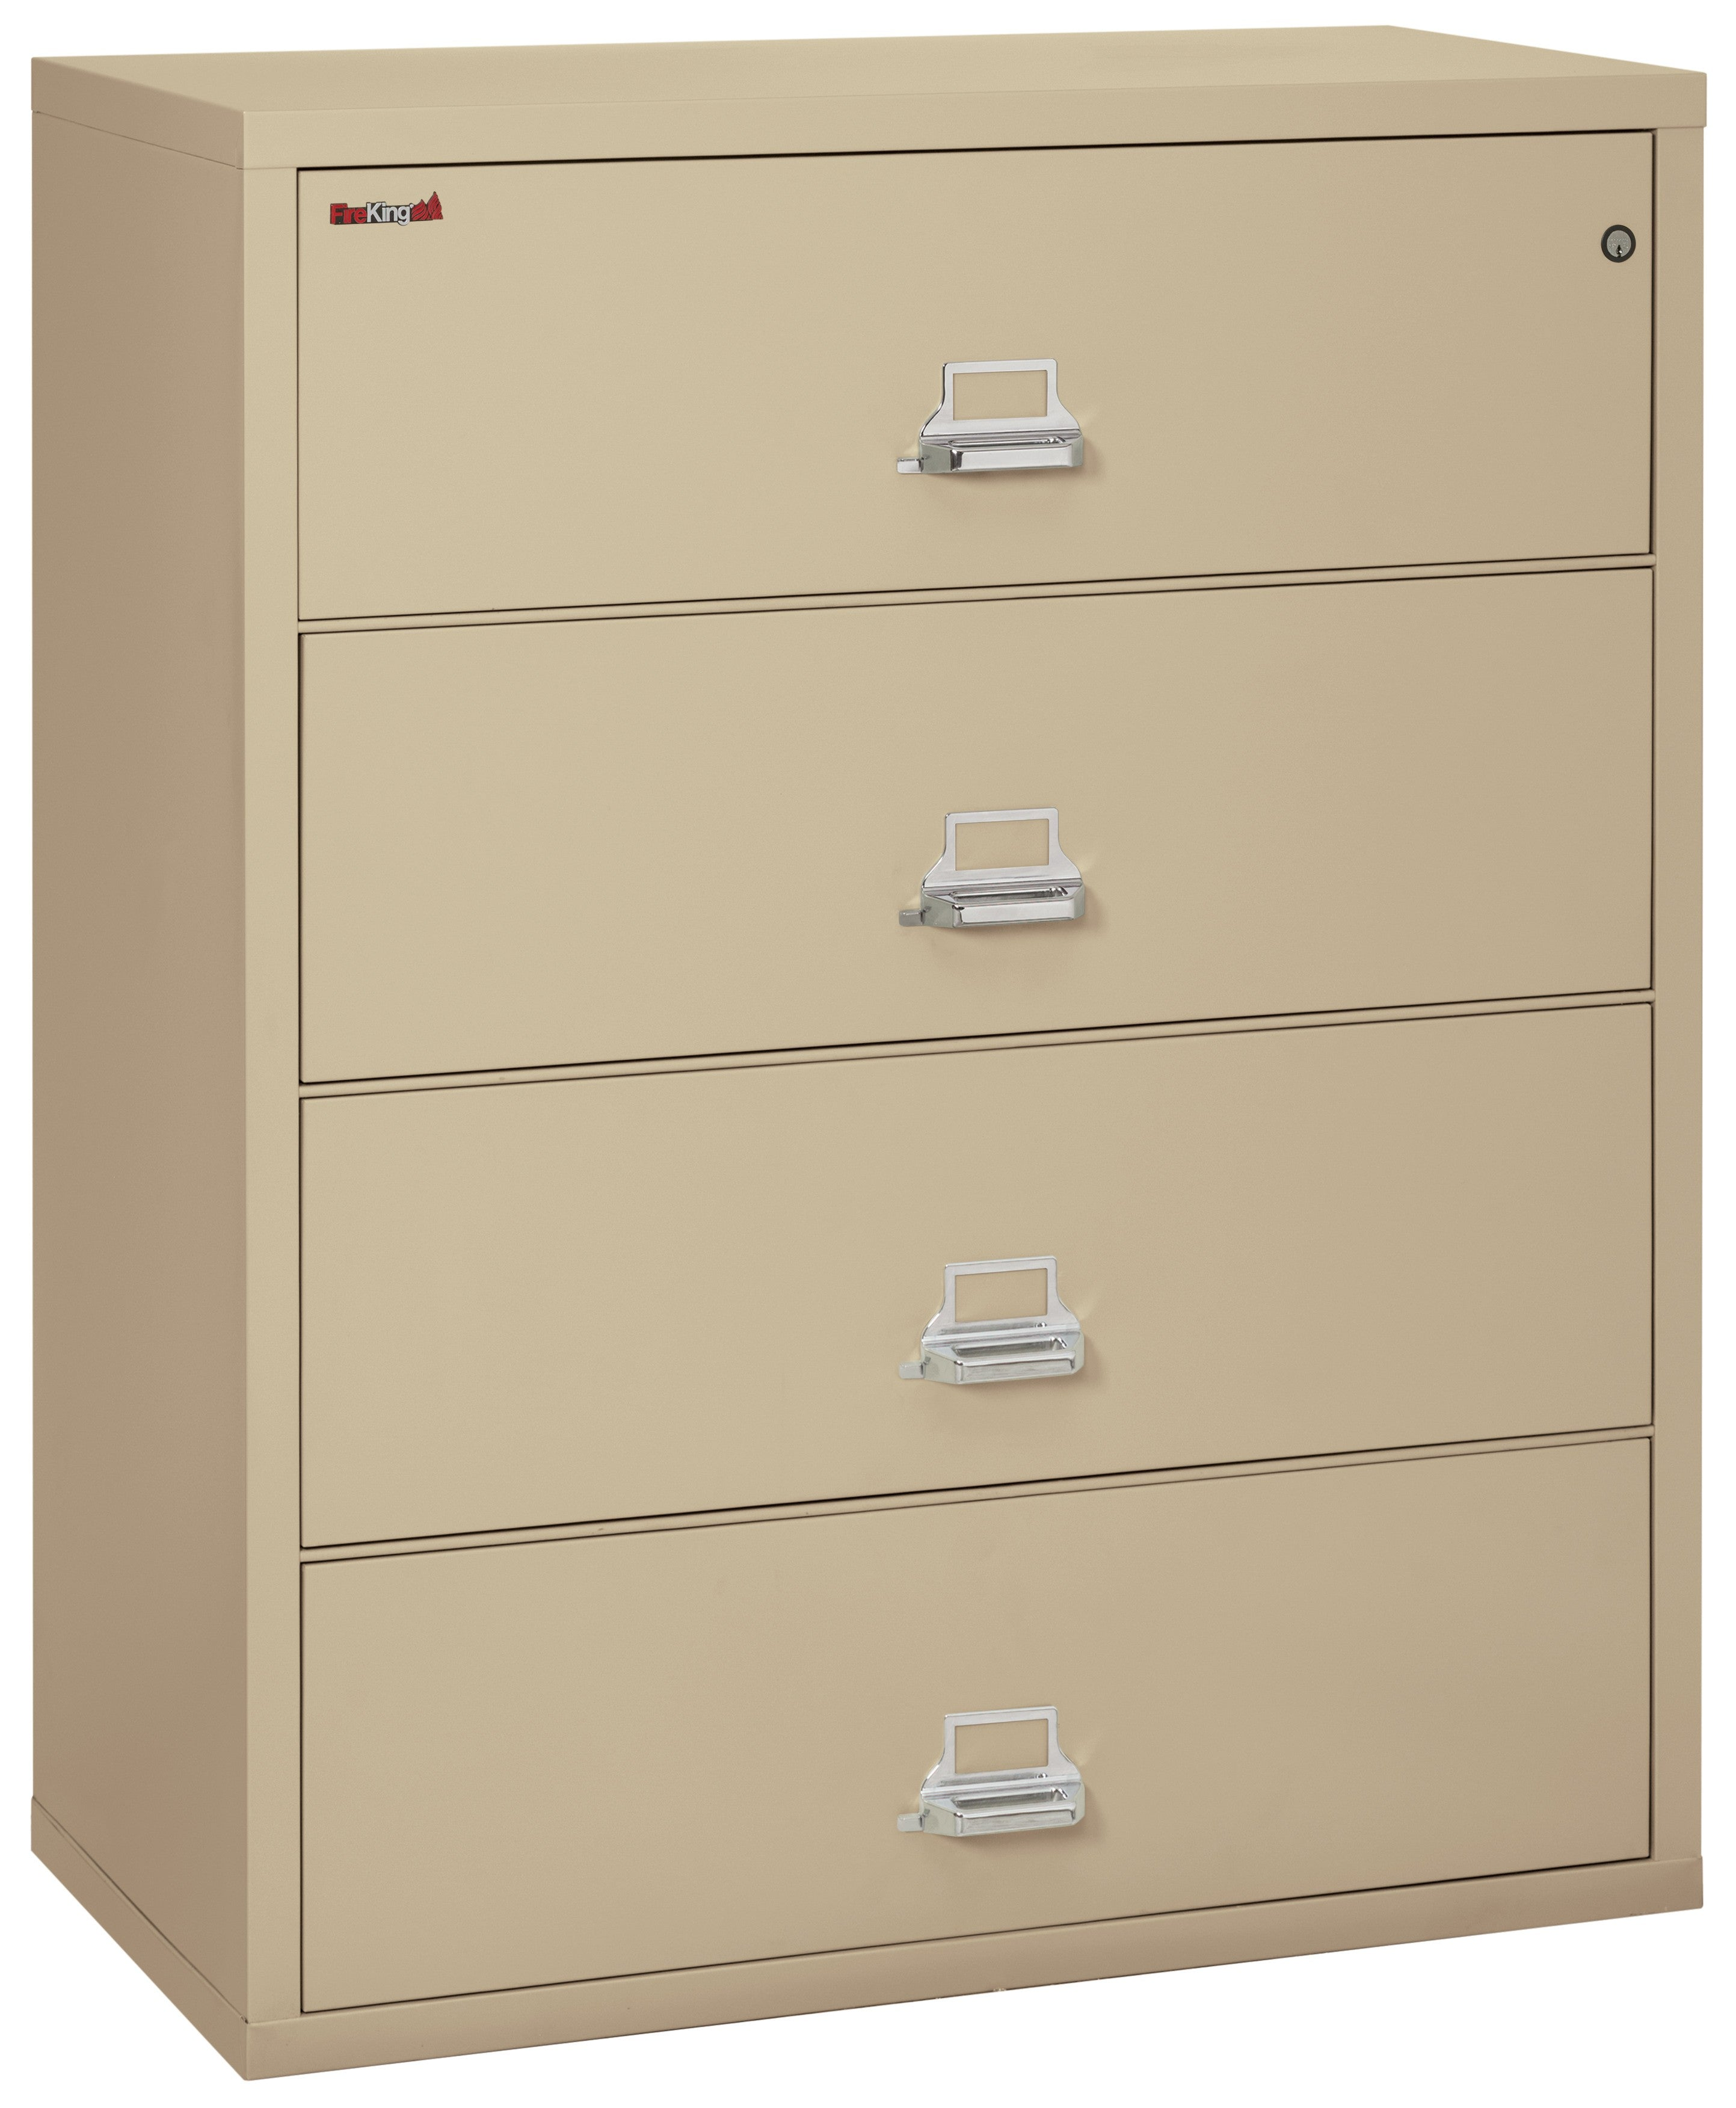 "Fireking 4 Drawer 44"" wide Classic Lateral File Cabinet"